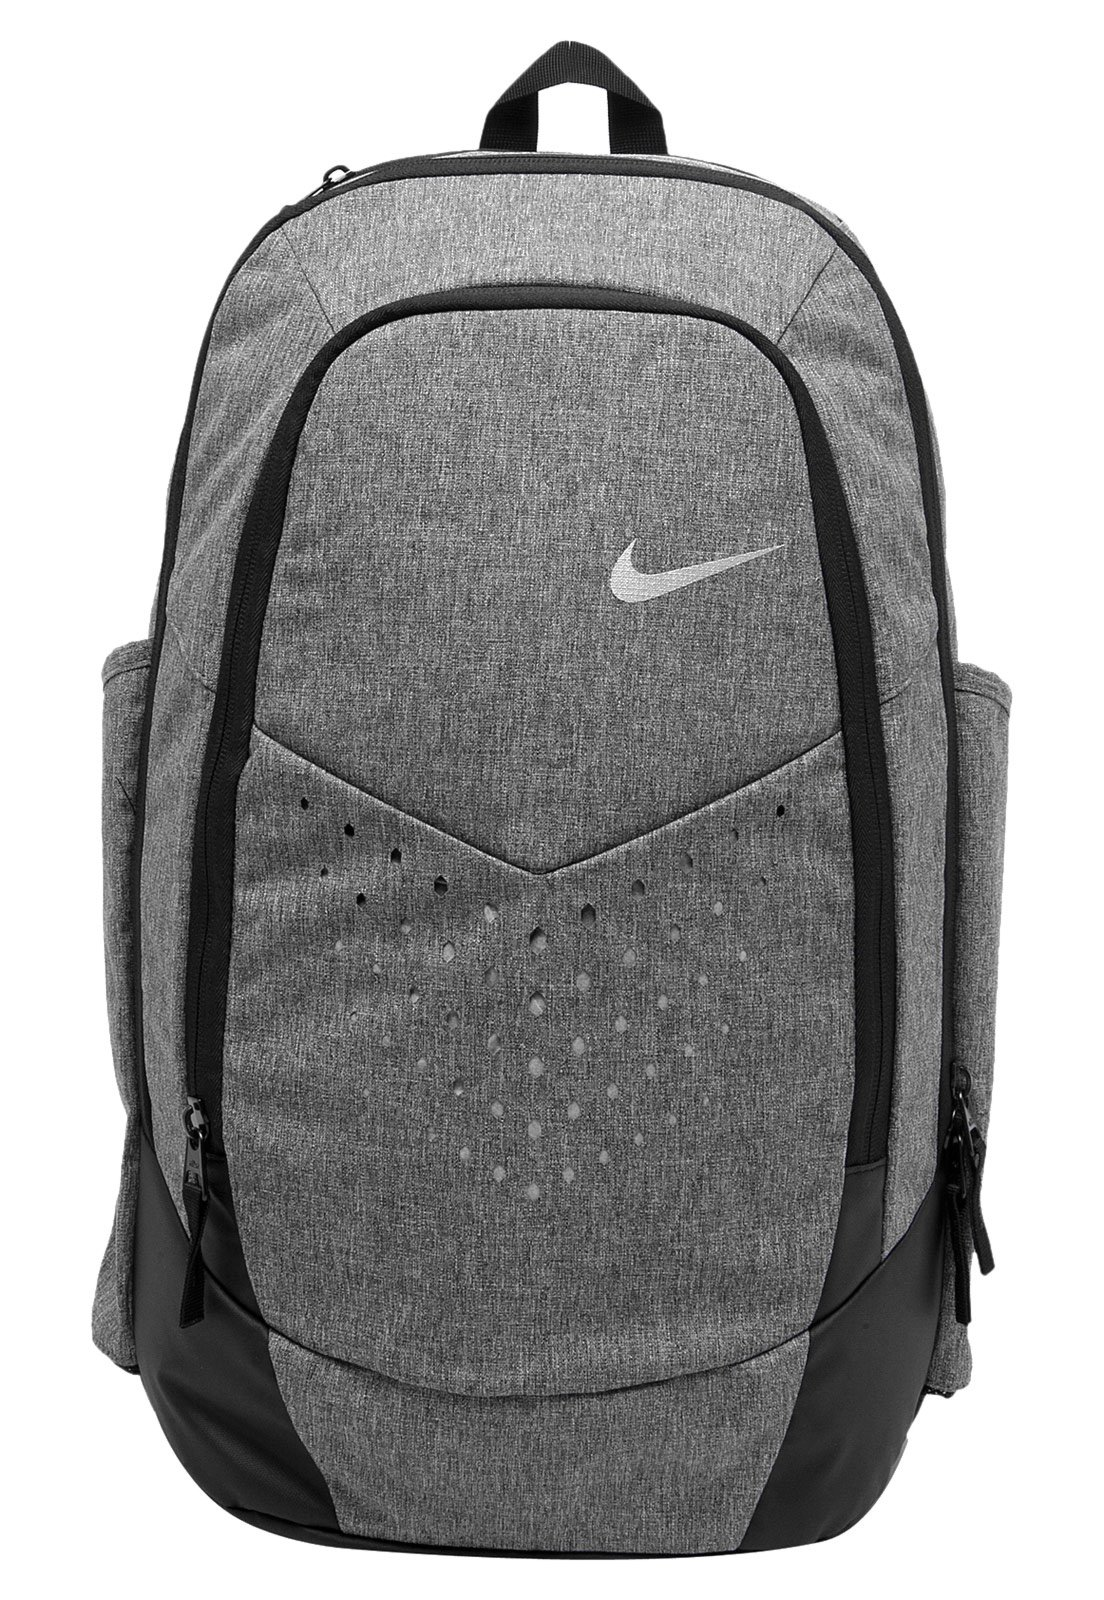 my2993 mochila nike vapor energy backpack